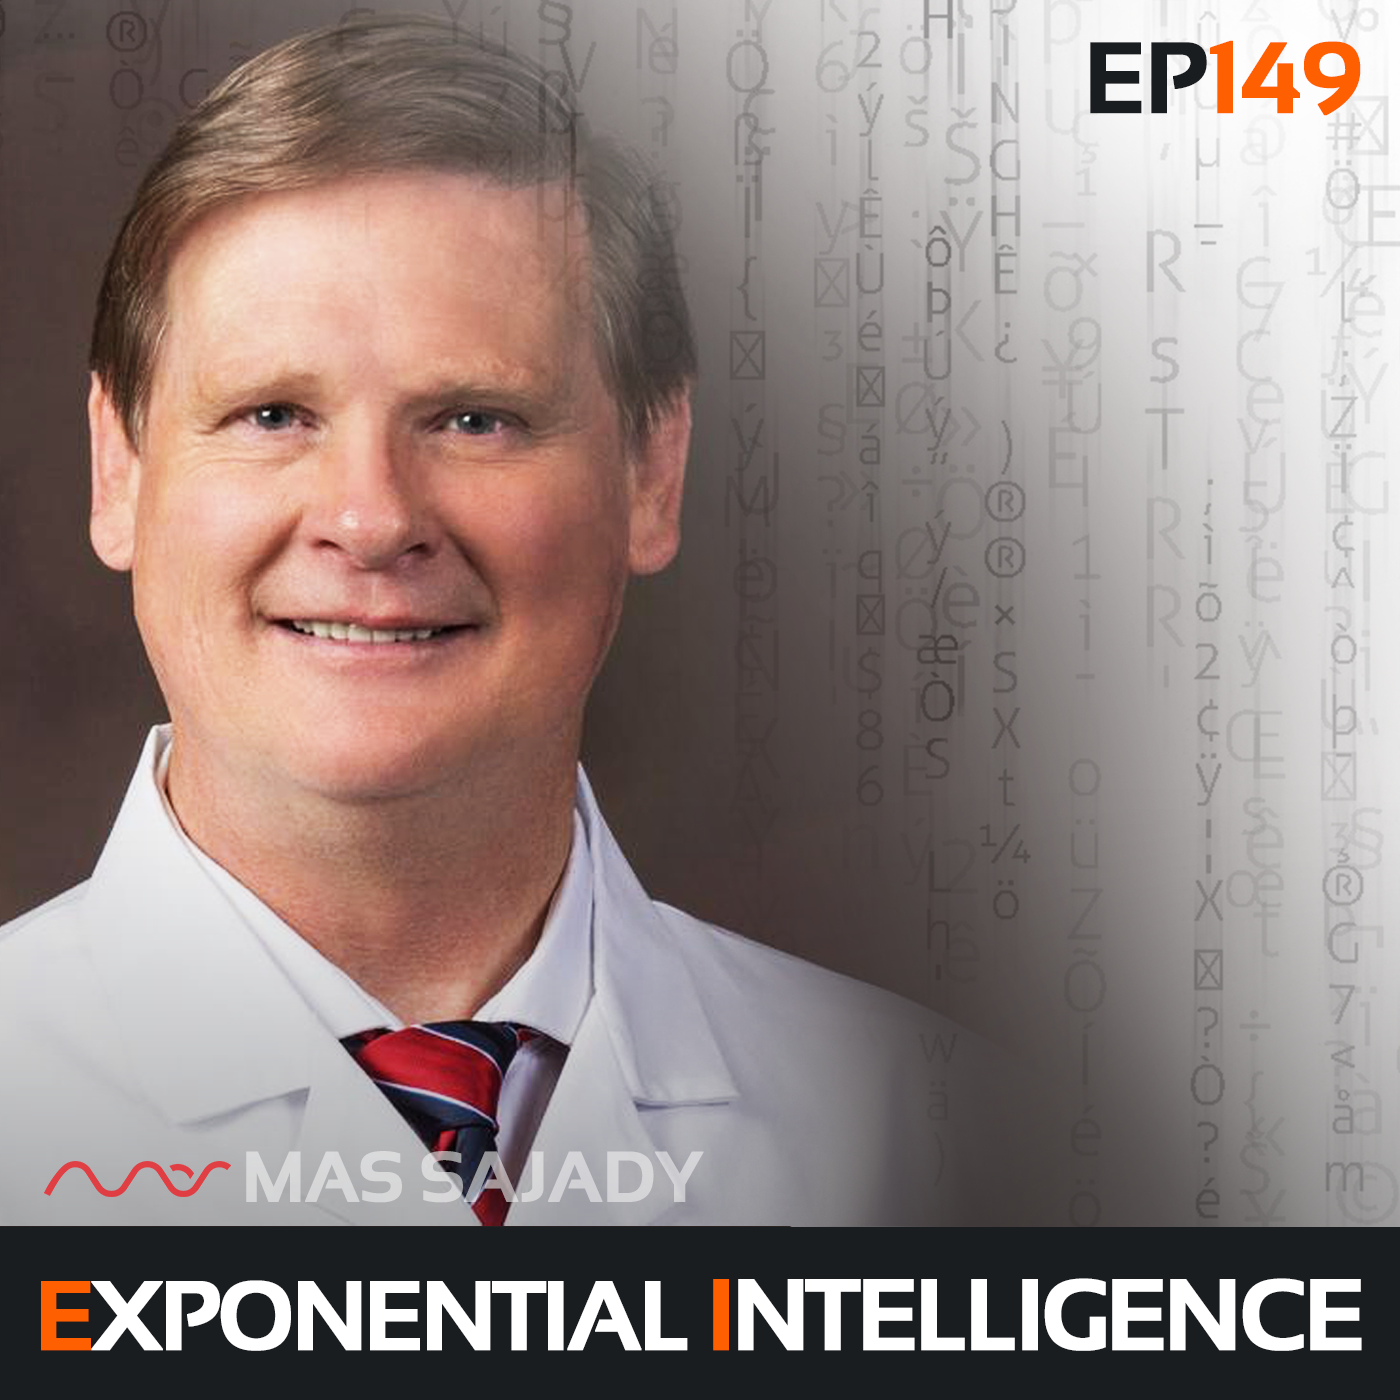 mas-sajady-exponential-intelligence-podcast-149-significant-health-with-dr-gordon-pederson.png